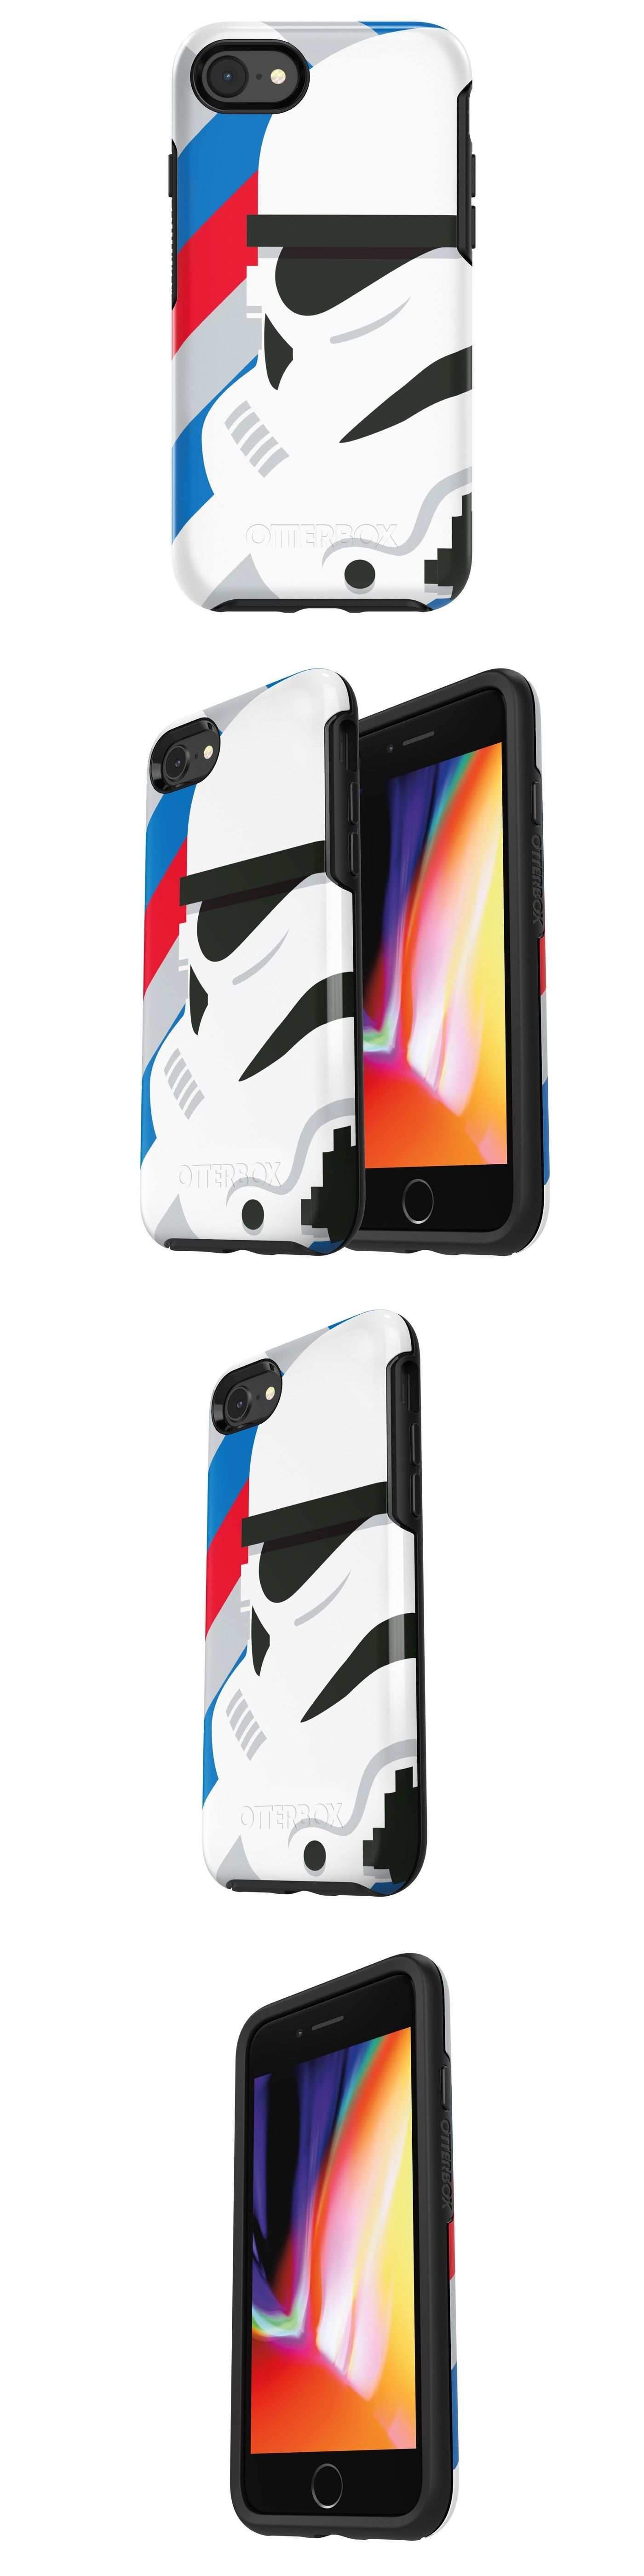 finest selection 3b3e3 dd0e7 Cases Covers and Skins 182070: Otterbox Apple Iphone 8 7 Star Wars ...